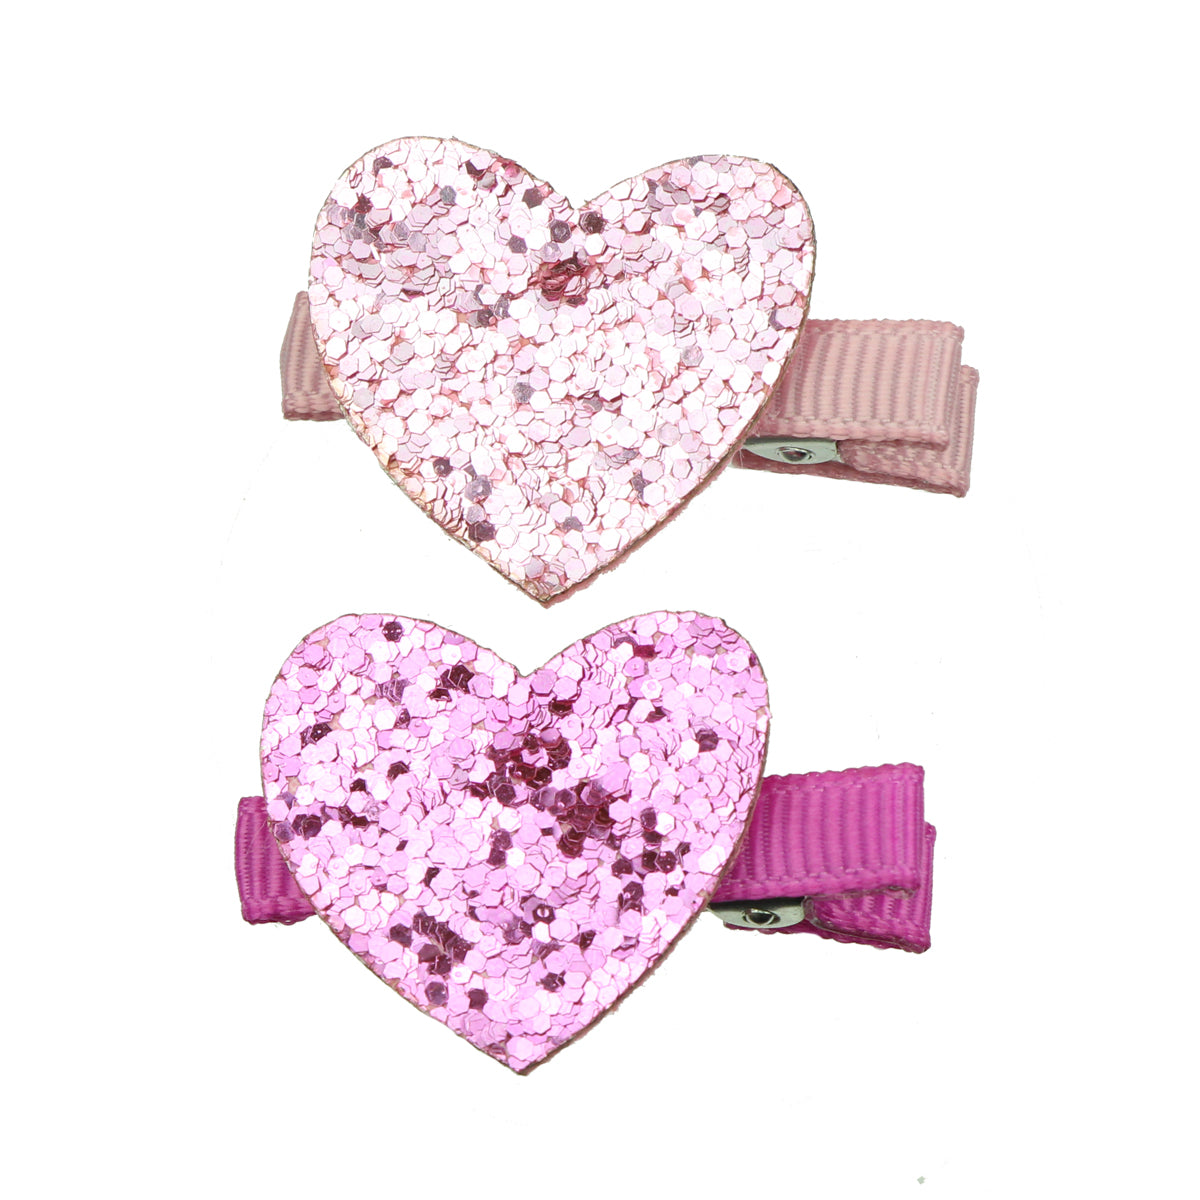 eco friendly custom faux suede leather pink love heart grosgrain lined girl hair clip wholesale at factory price7613 - SOHOBUCKS CO.,LIMITED